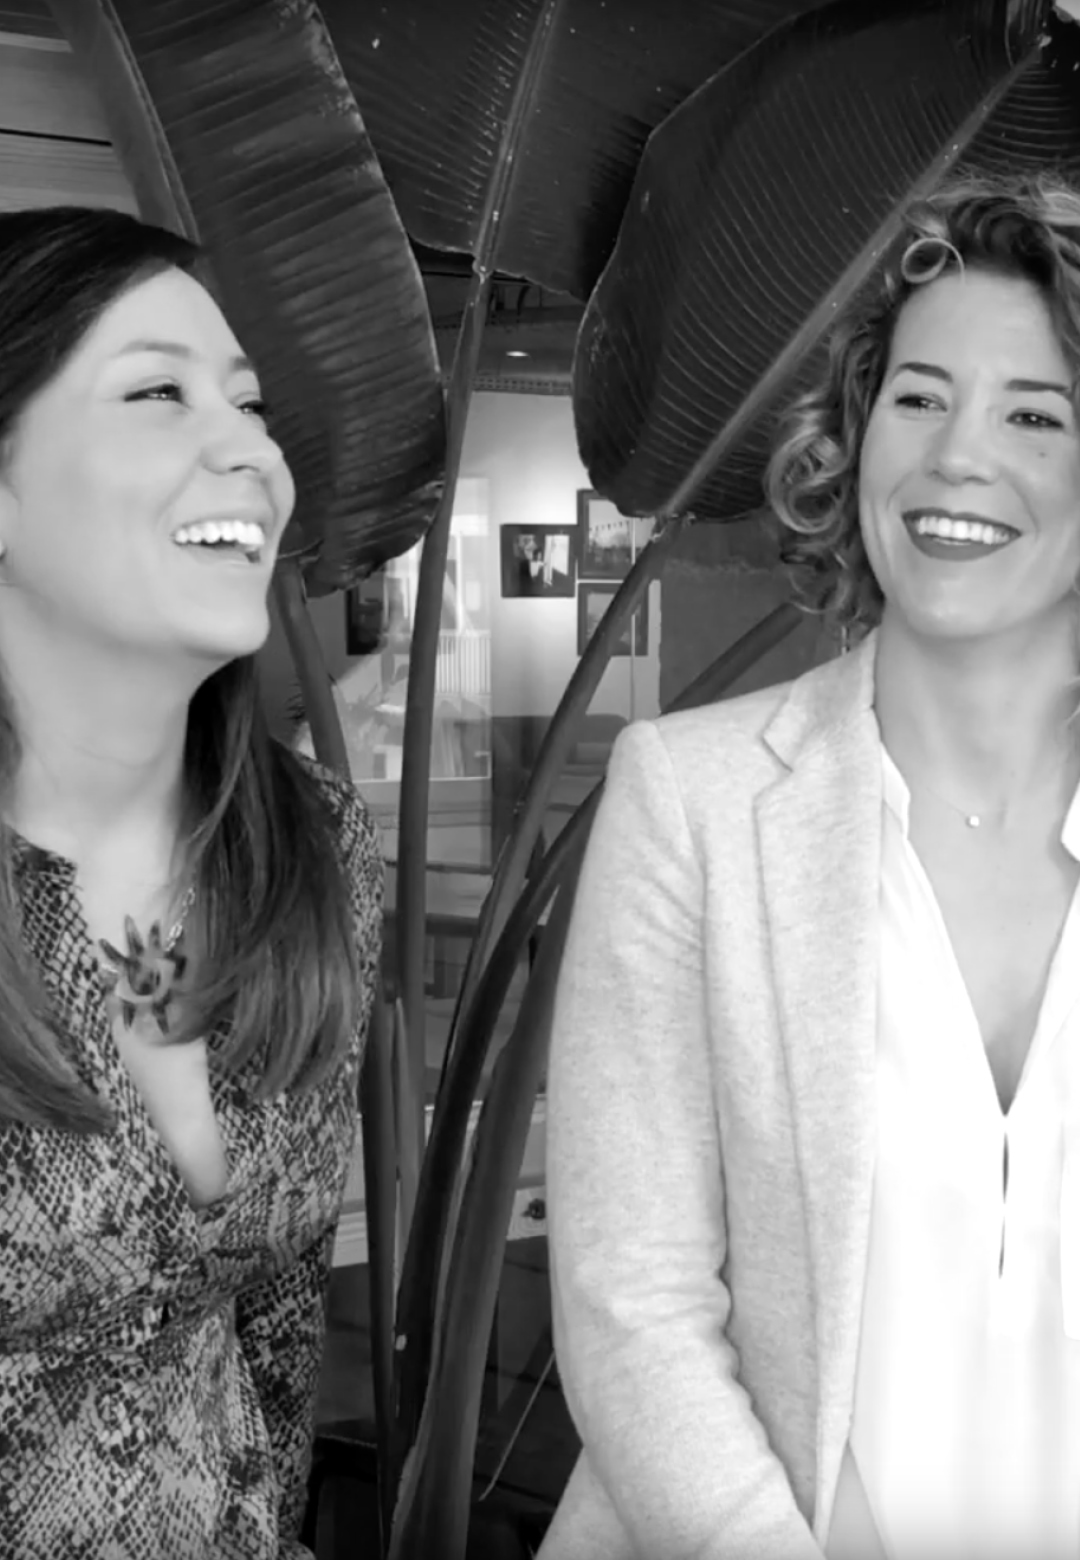 An interview with Gisela Steiger and Maria Asia Sierra, from The Light Squad Studio, for Women in Lighting | Gisela Steiger | Maria Asia Sierra | The Light Squad Studio| Women in Lighting| Light Collective| STIRworld